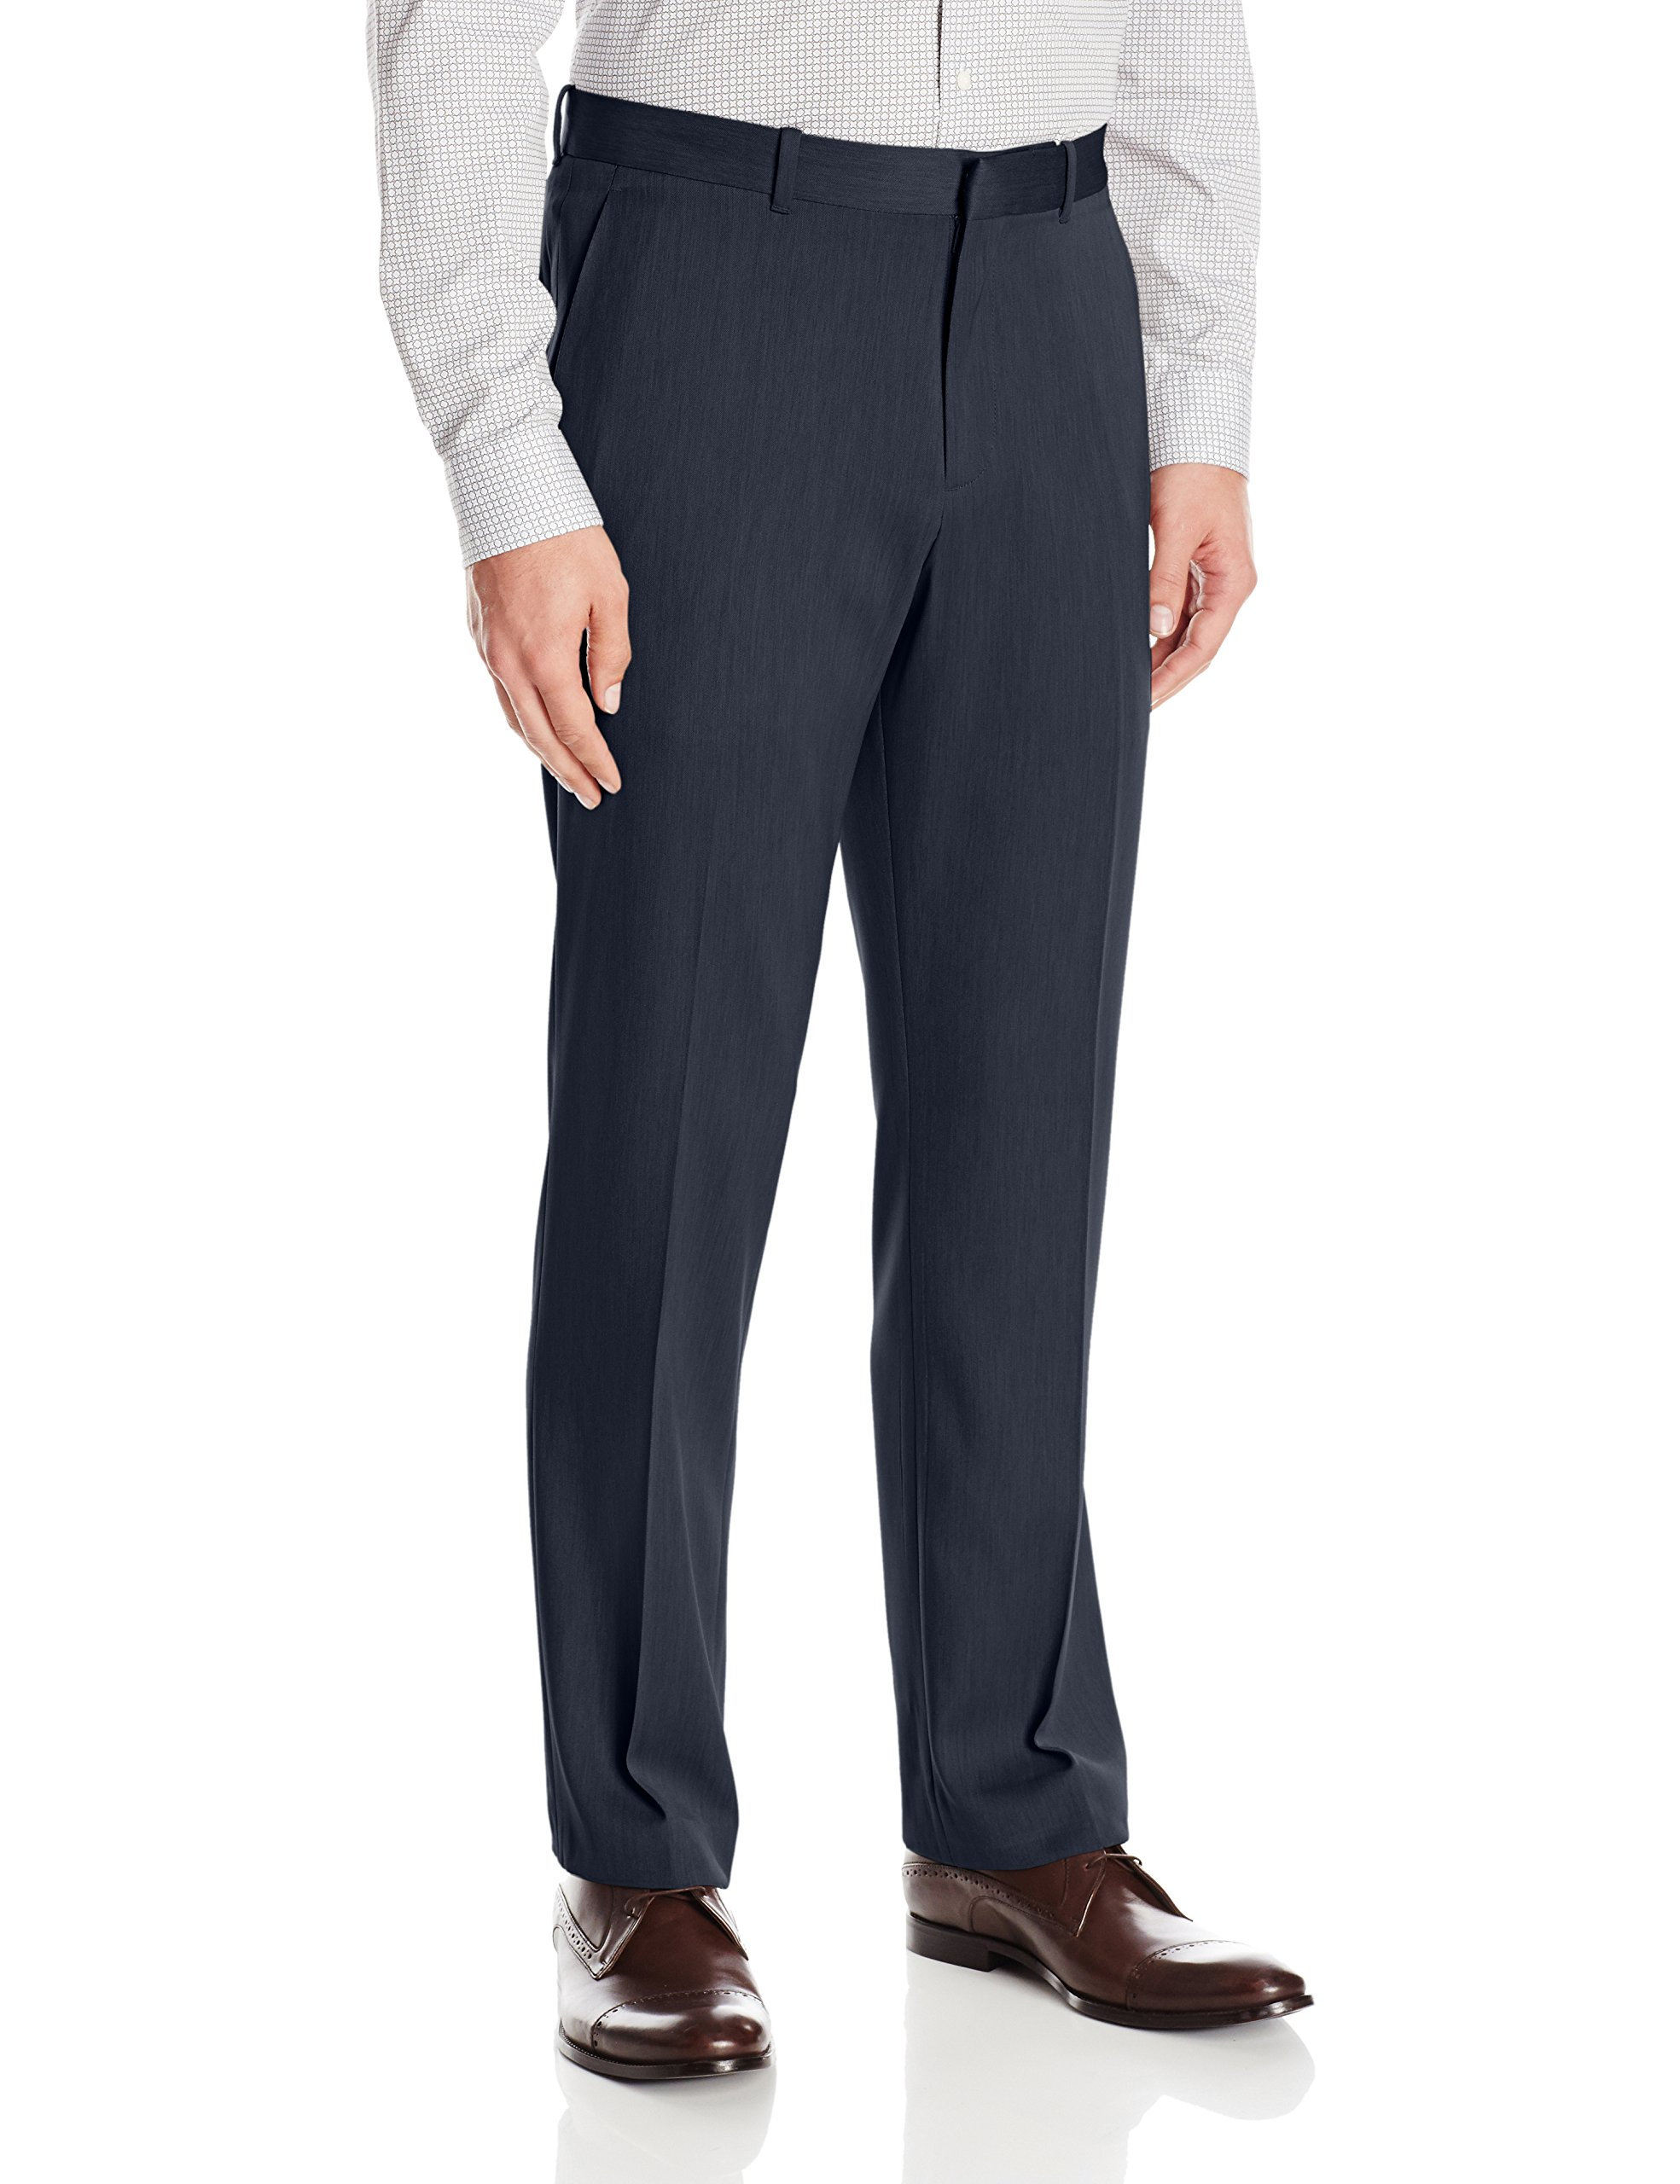 Perry Ellis Men's Flat Front Modern Fit Melange Pant, Twilight, 34x32